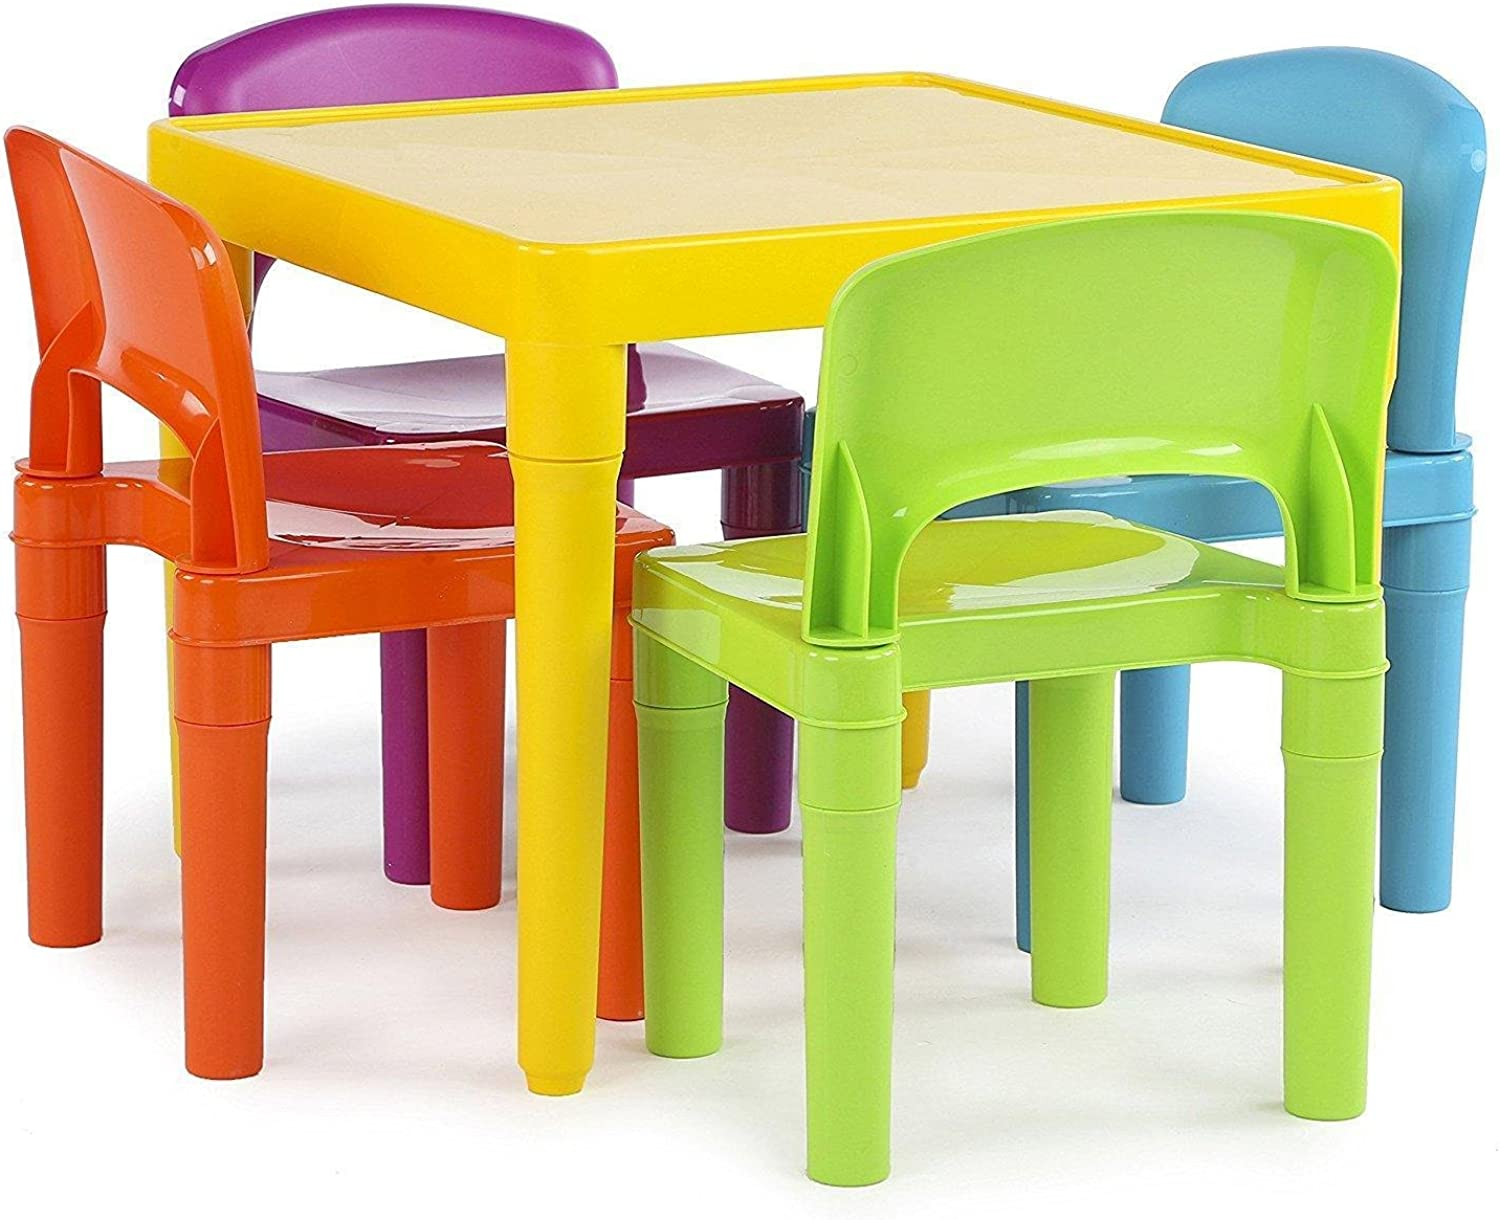 Generic lticolo Back Stool Seat quare Play Desk Mid ck Stool Kids Table Chairs lticolor Squ Set Multicolor ds Table C Square Play e Ch